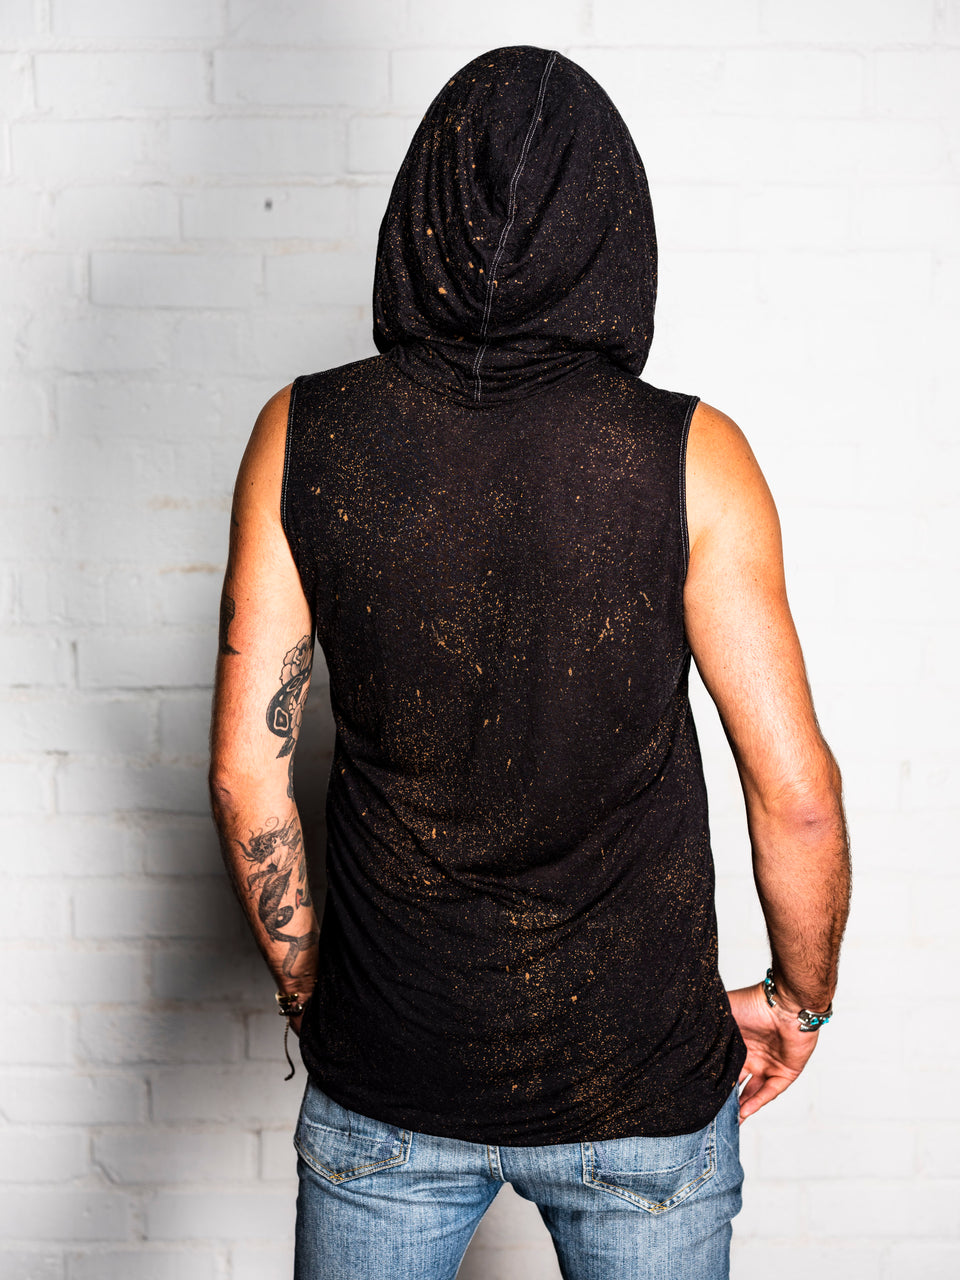 Sleeveless V-Neck Shirt with Hood - Vintage Cosmic